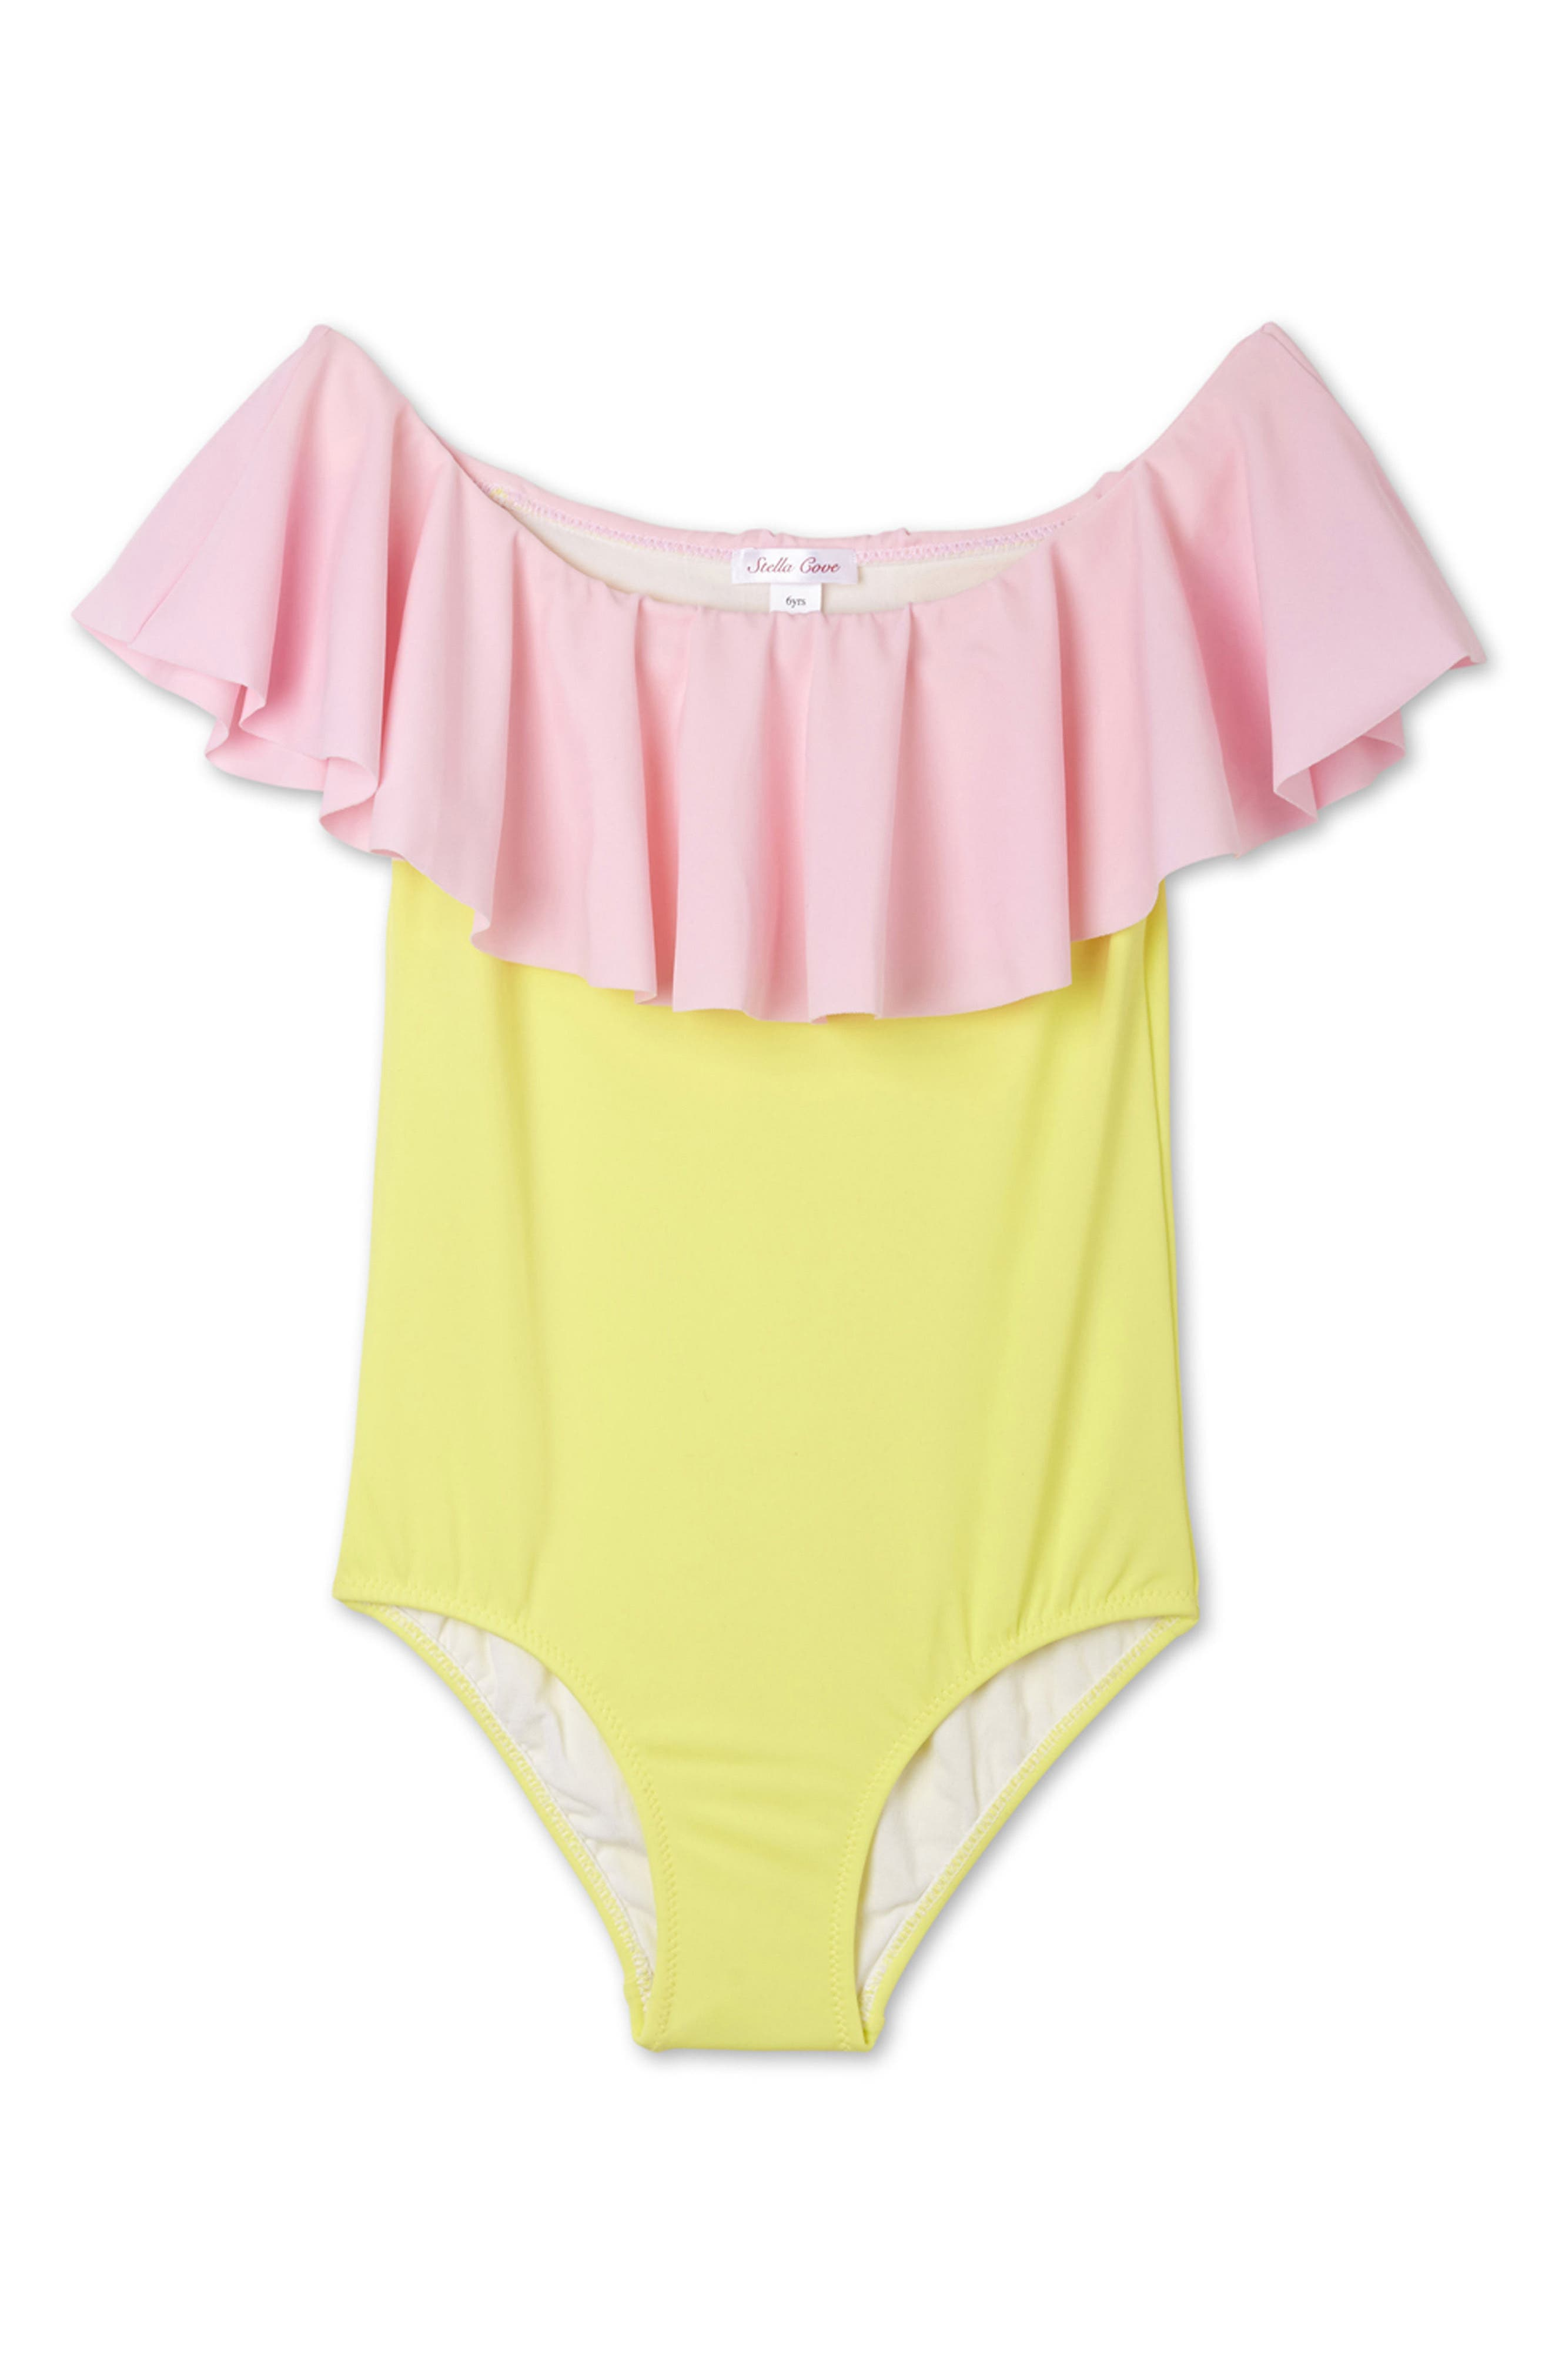 One-Piece Ruffle Swimsuit,                         Main,                         color, Yellow